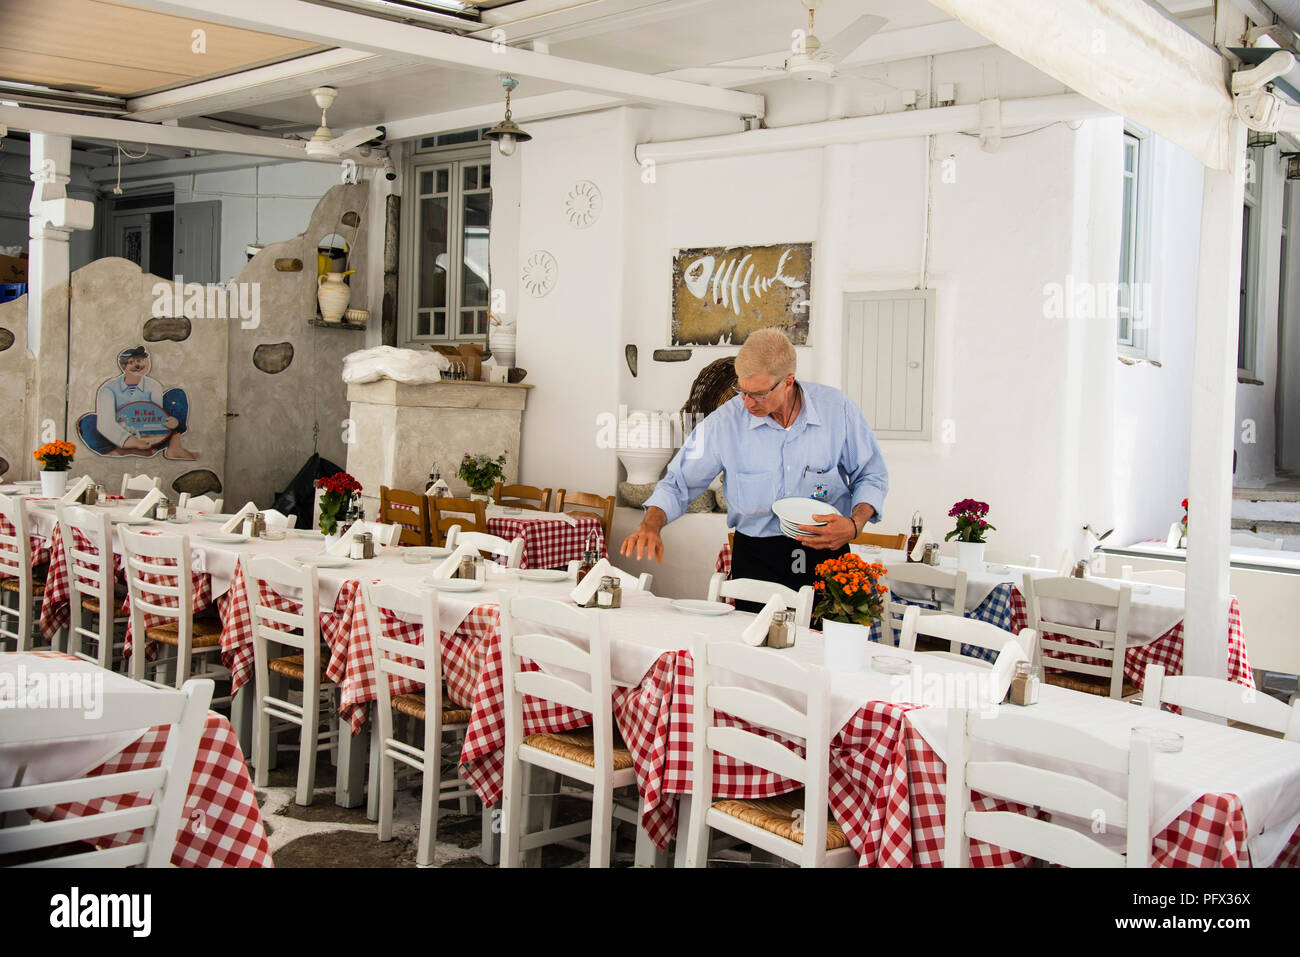 Preparing for Lunch in Greece - Stock Image